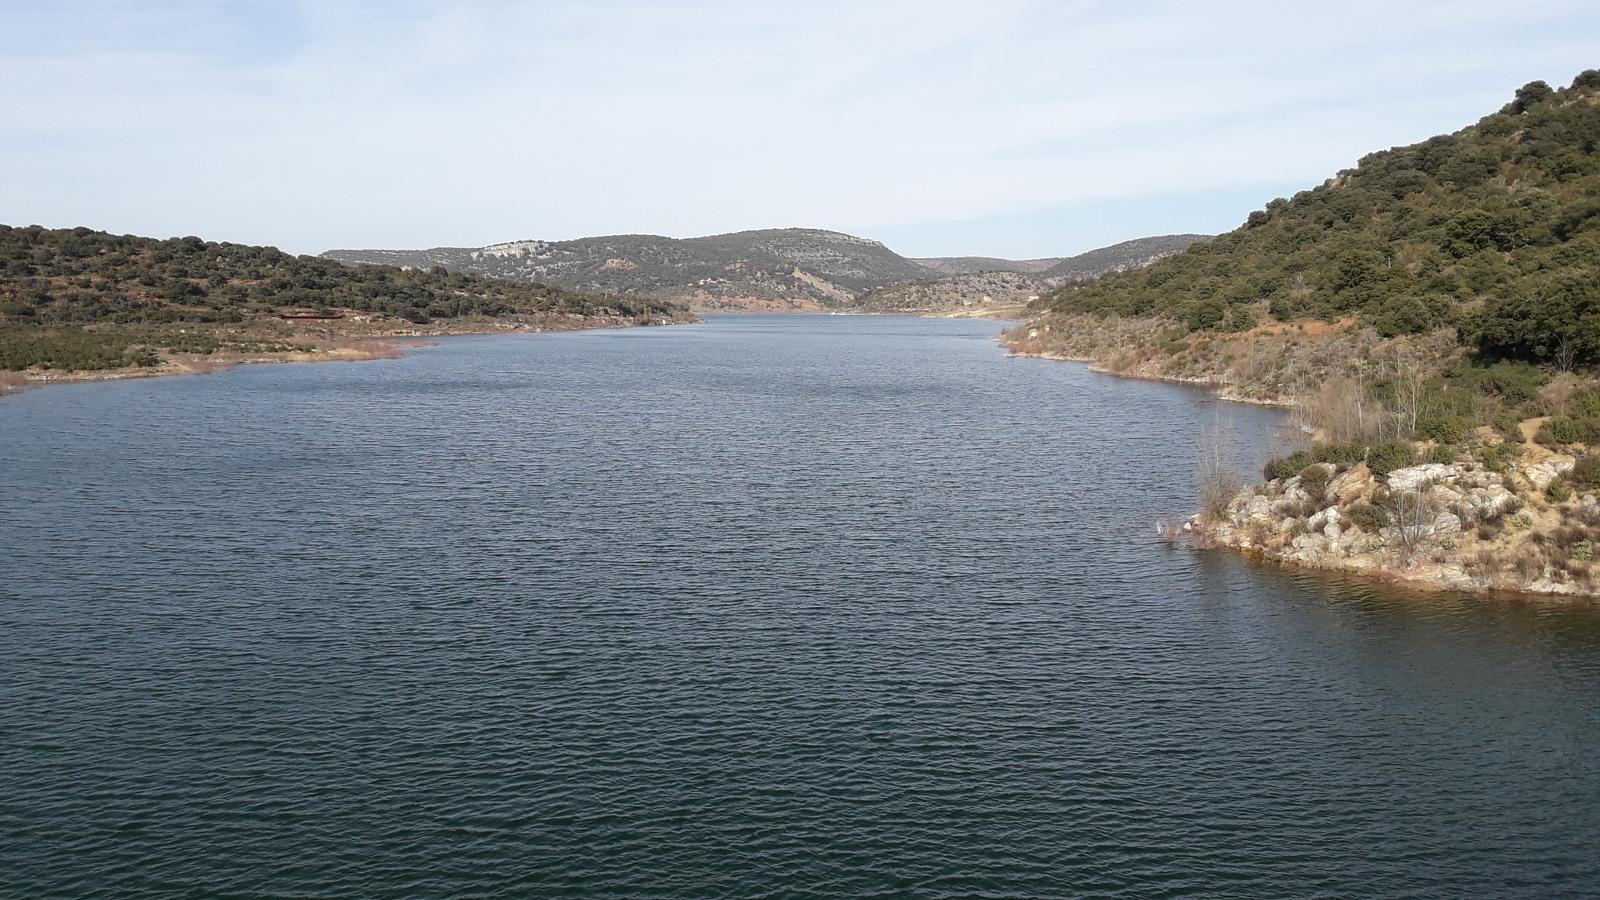 Photo of Santamera, cañón del río Salado los buitres y el embalse del Atance